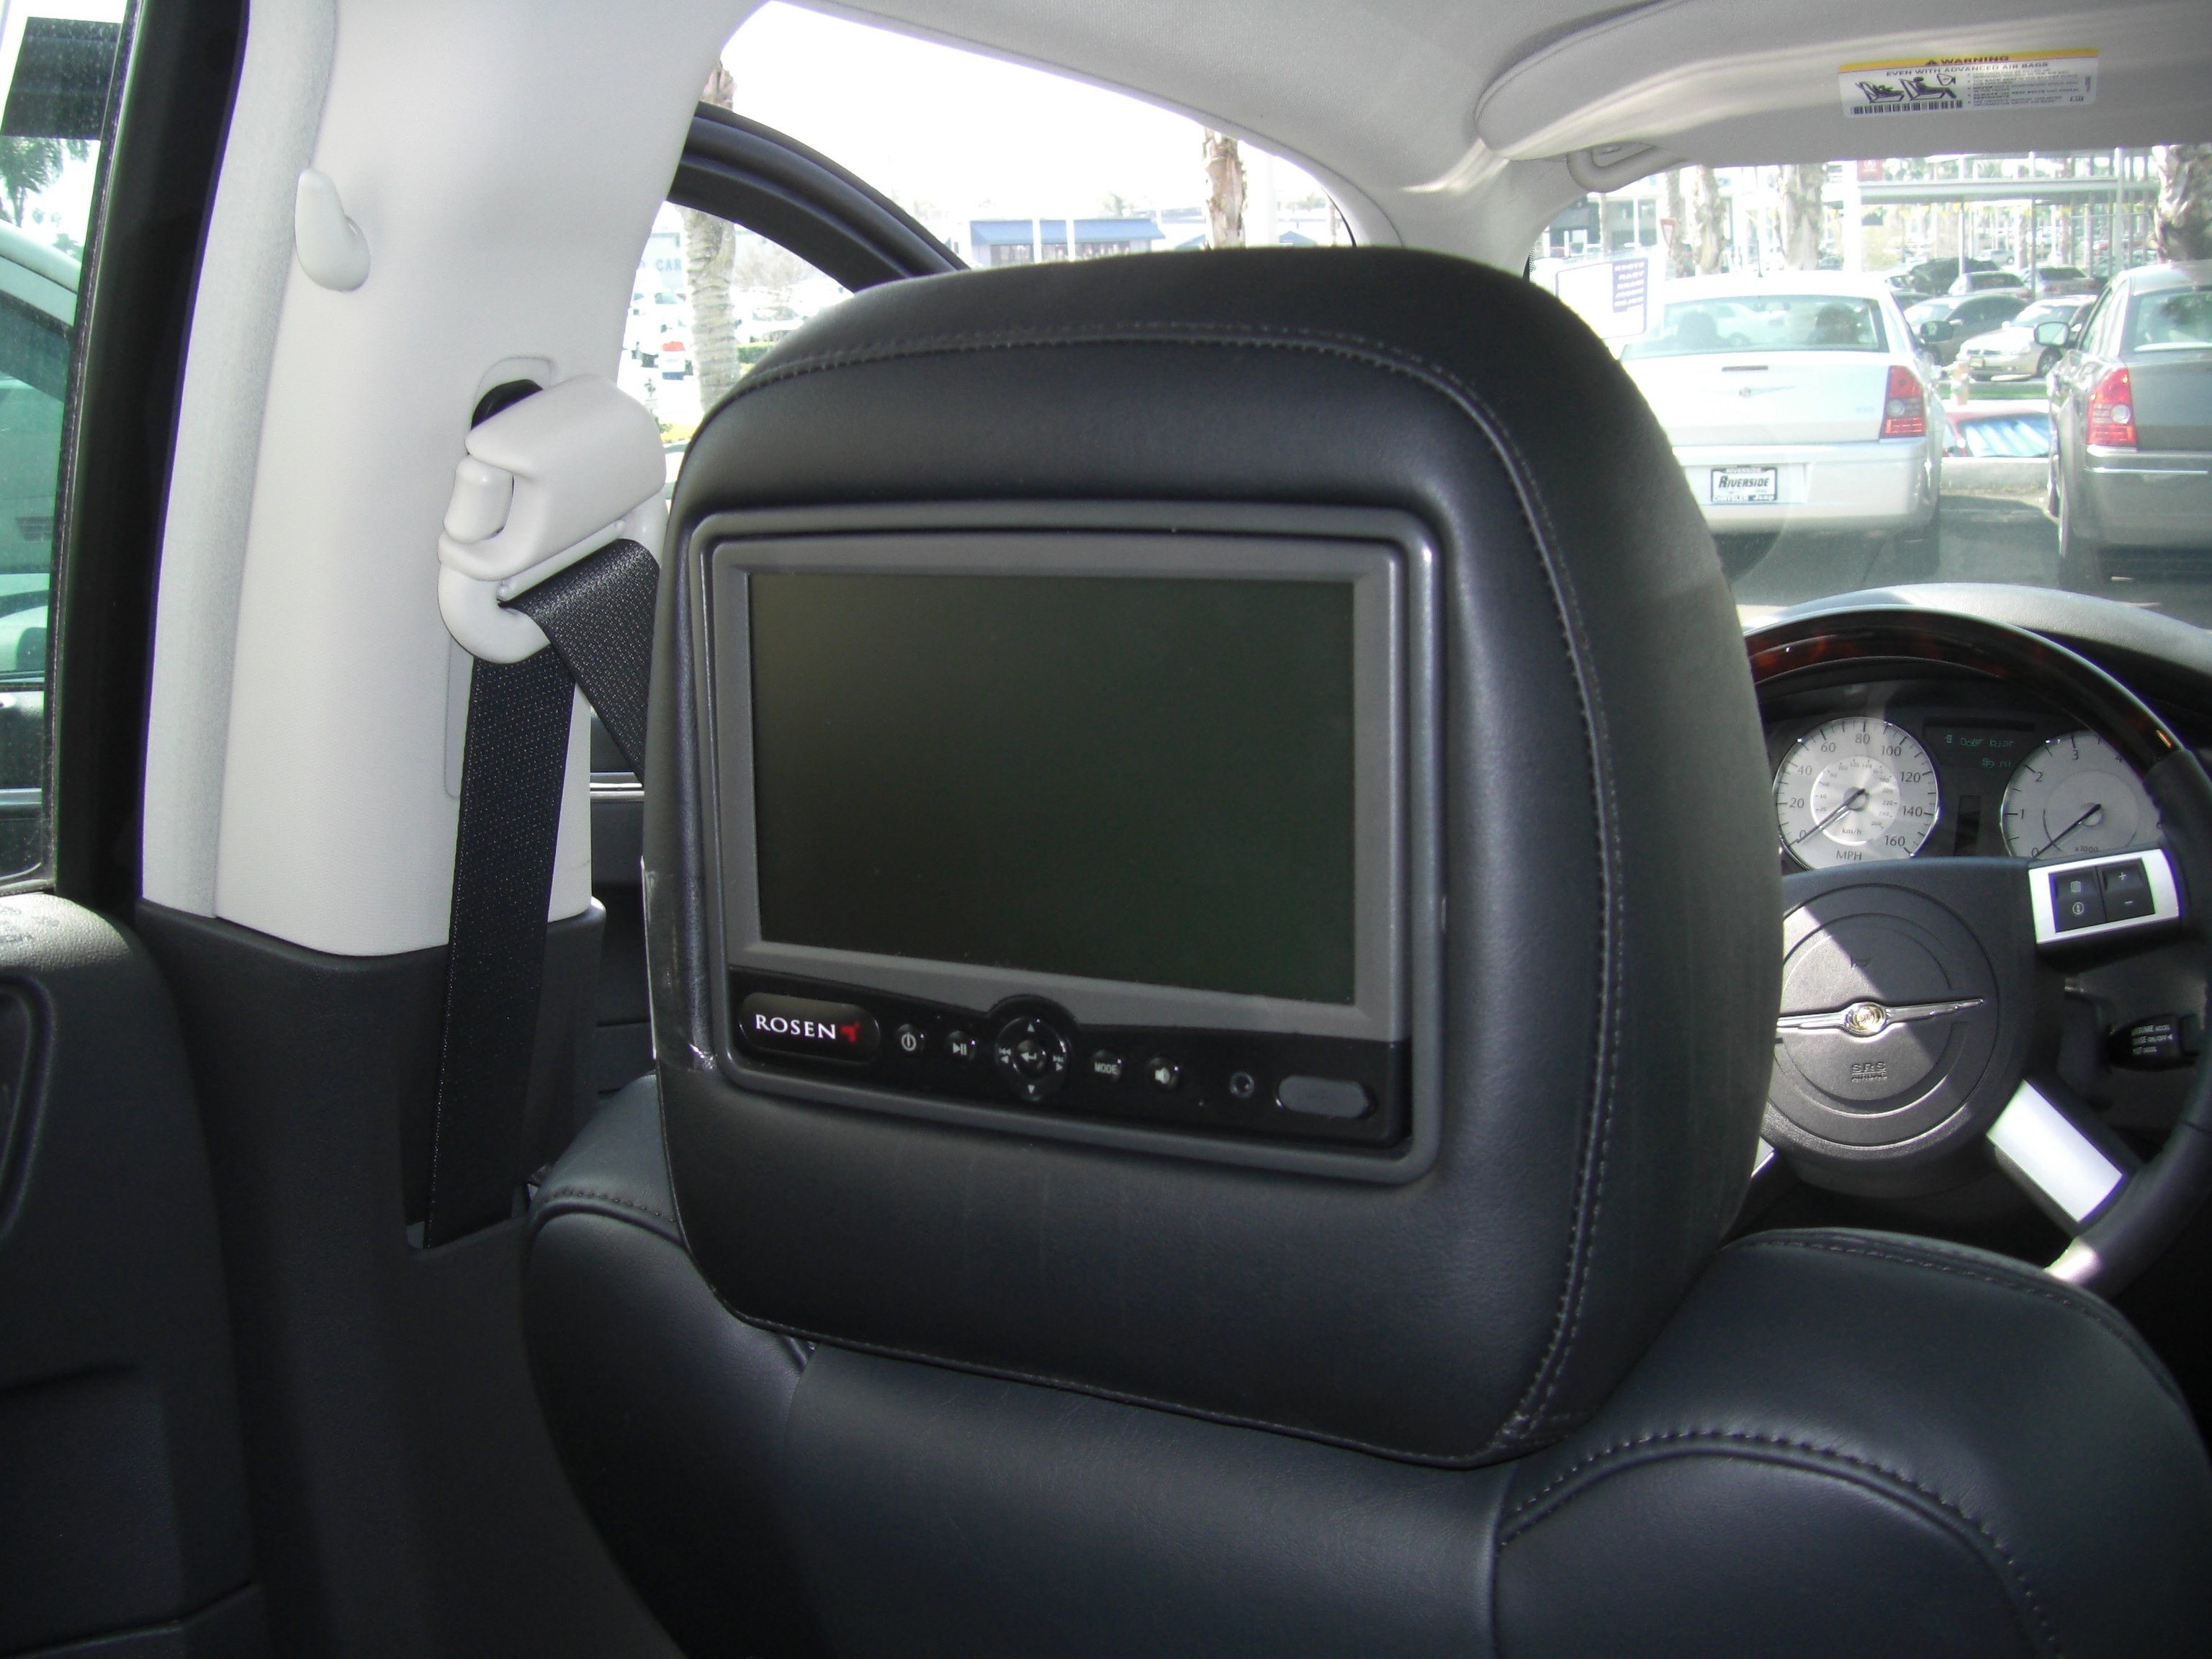 Chrysler Rear Seat Entertainment Rosen Av7500 Dvd Headrest